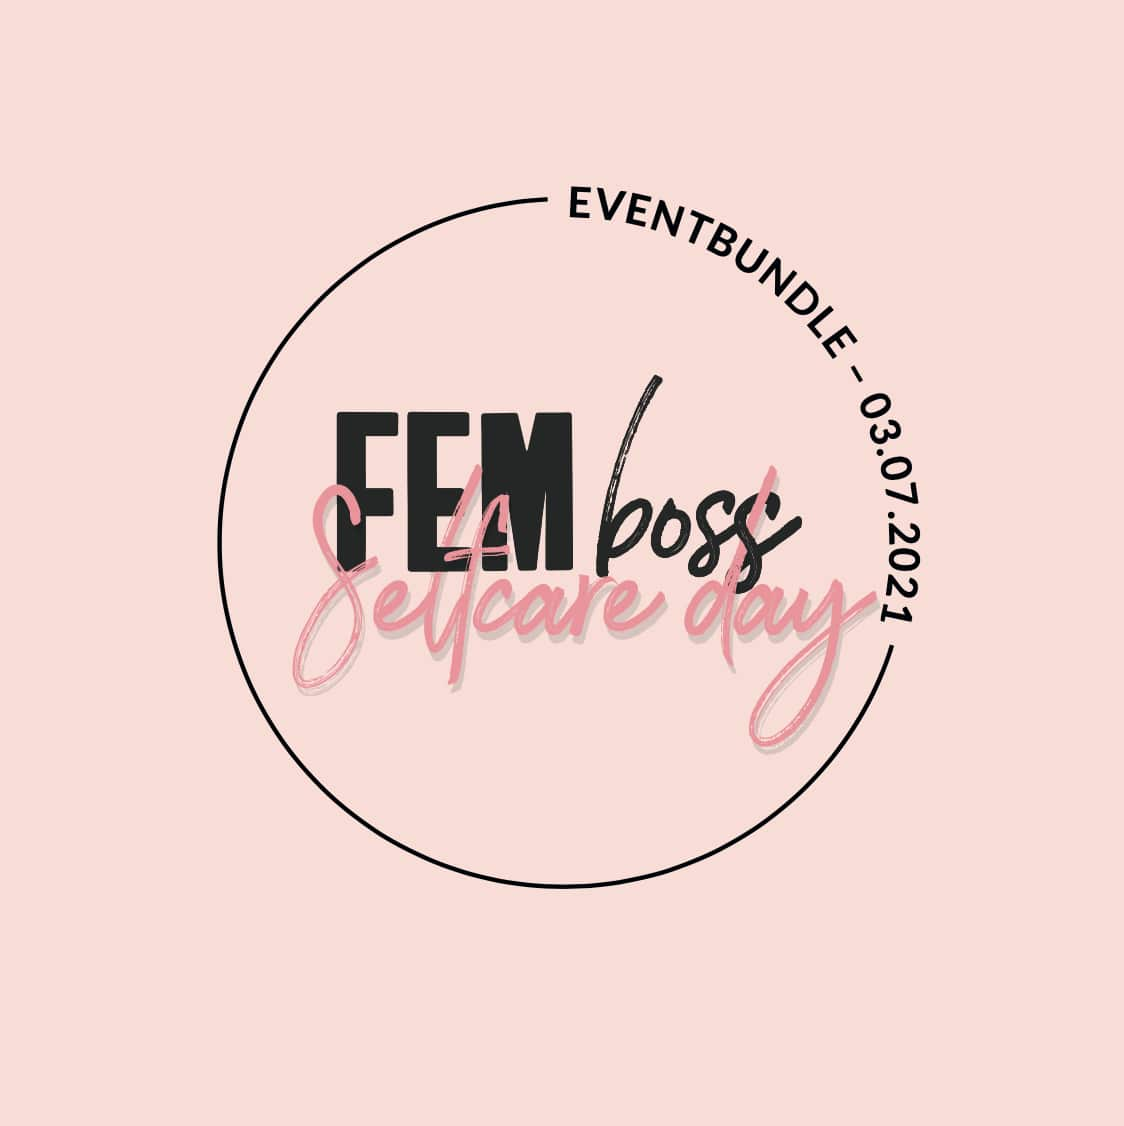 FEMboss Selfcare Day